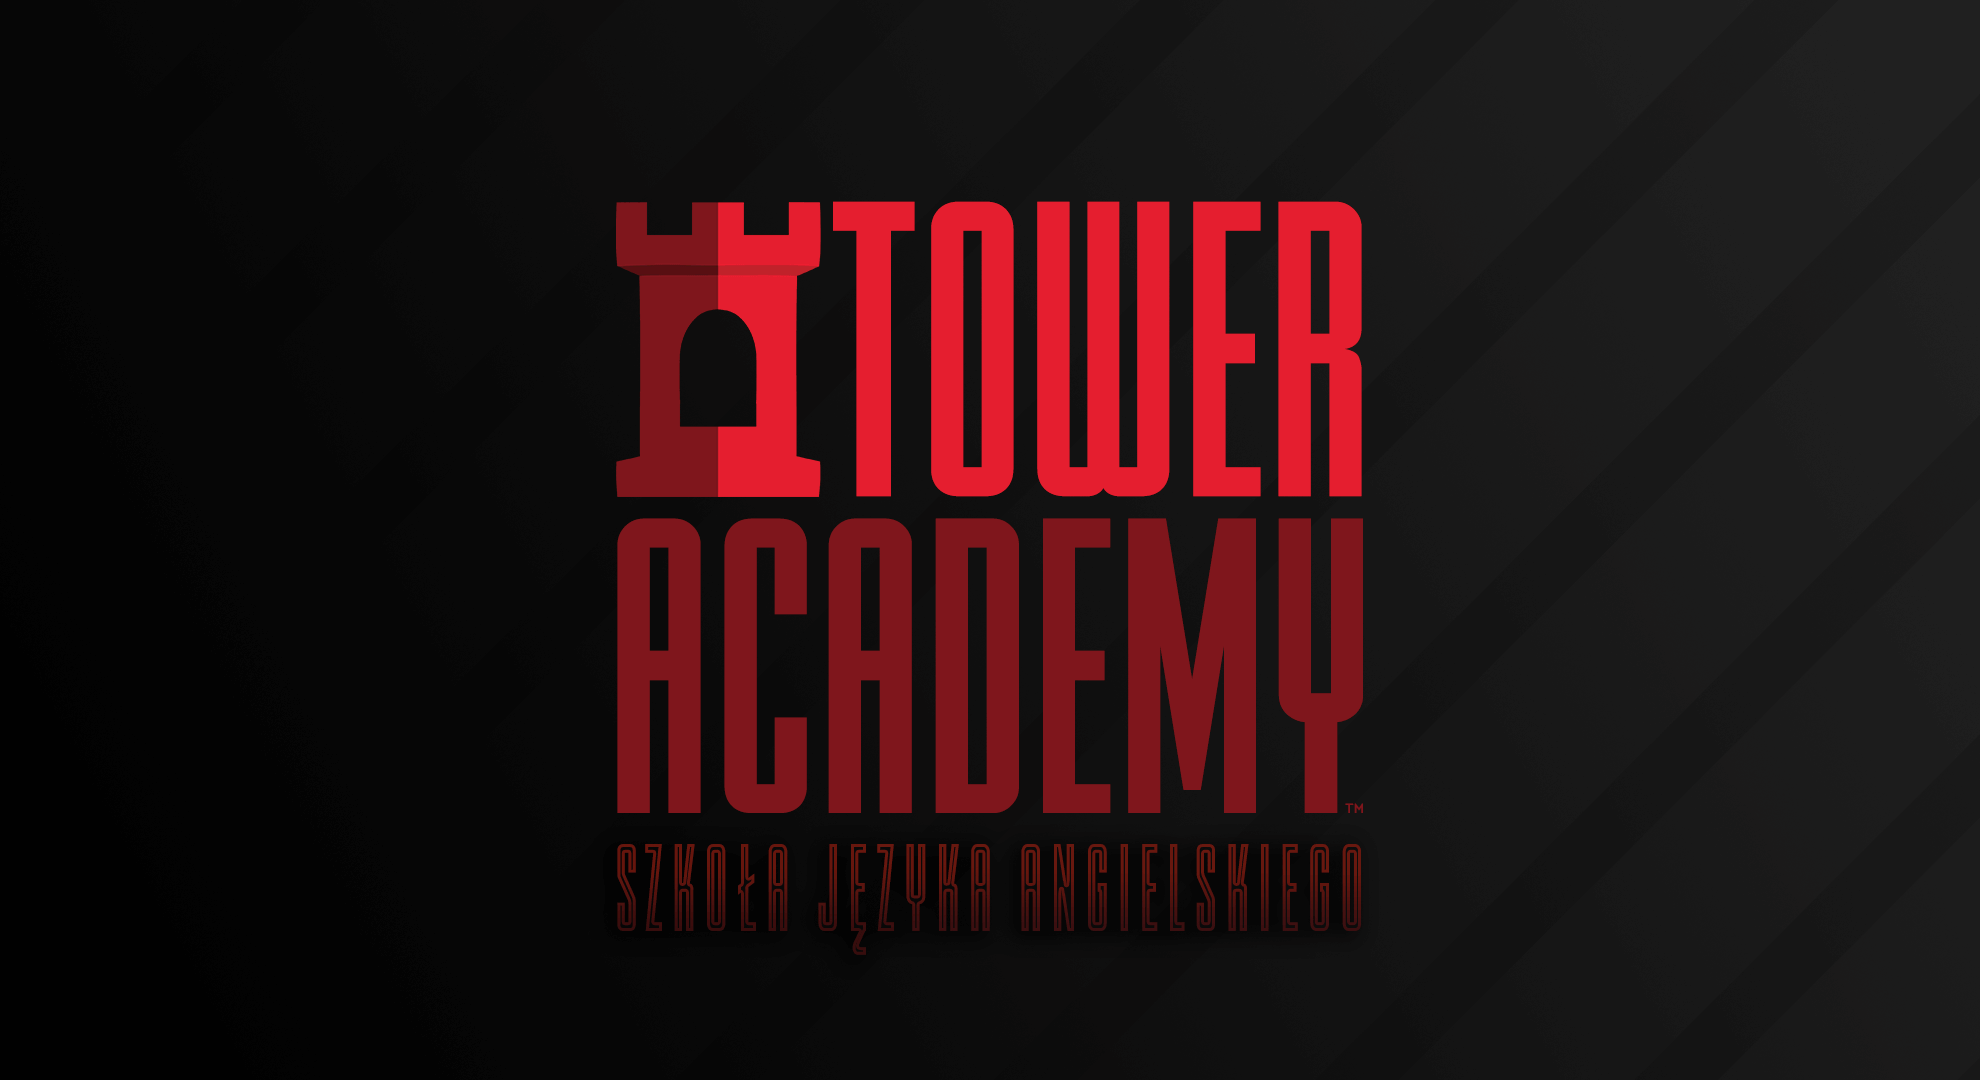 Welcome to Tower Academy